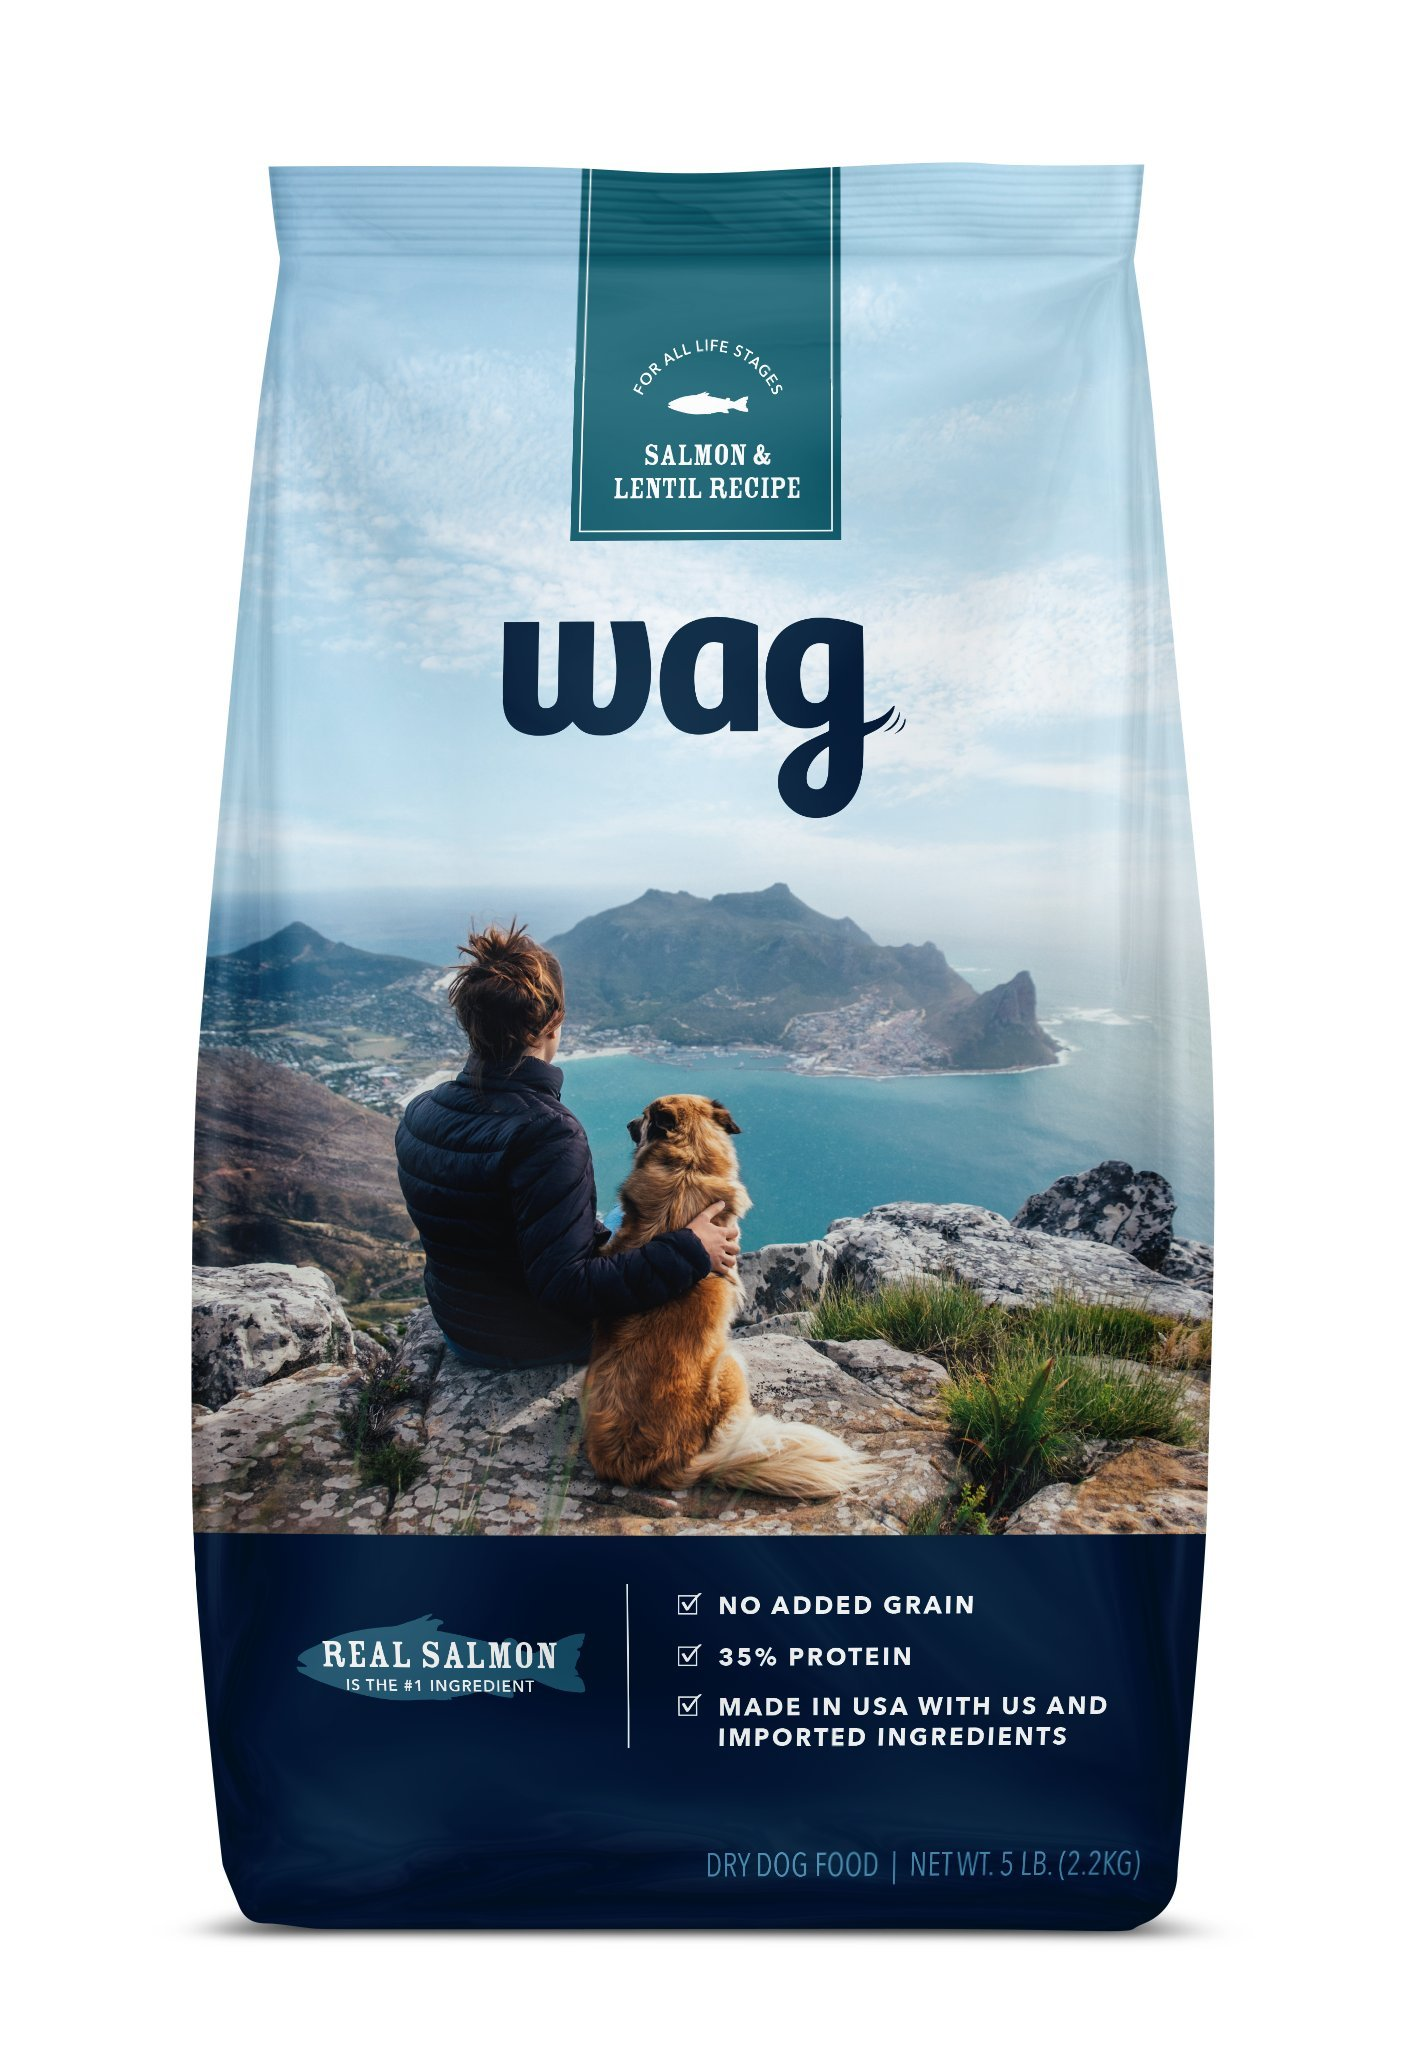 Amazon Brand - Wag Dry Dog Food Trial-Size Bag, No Added Grain, Salmon & Lentil Recipe